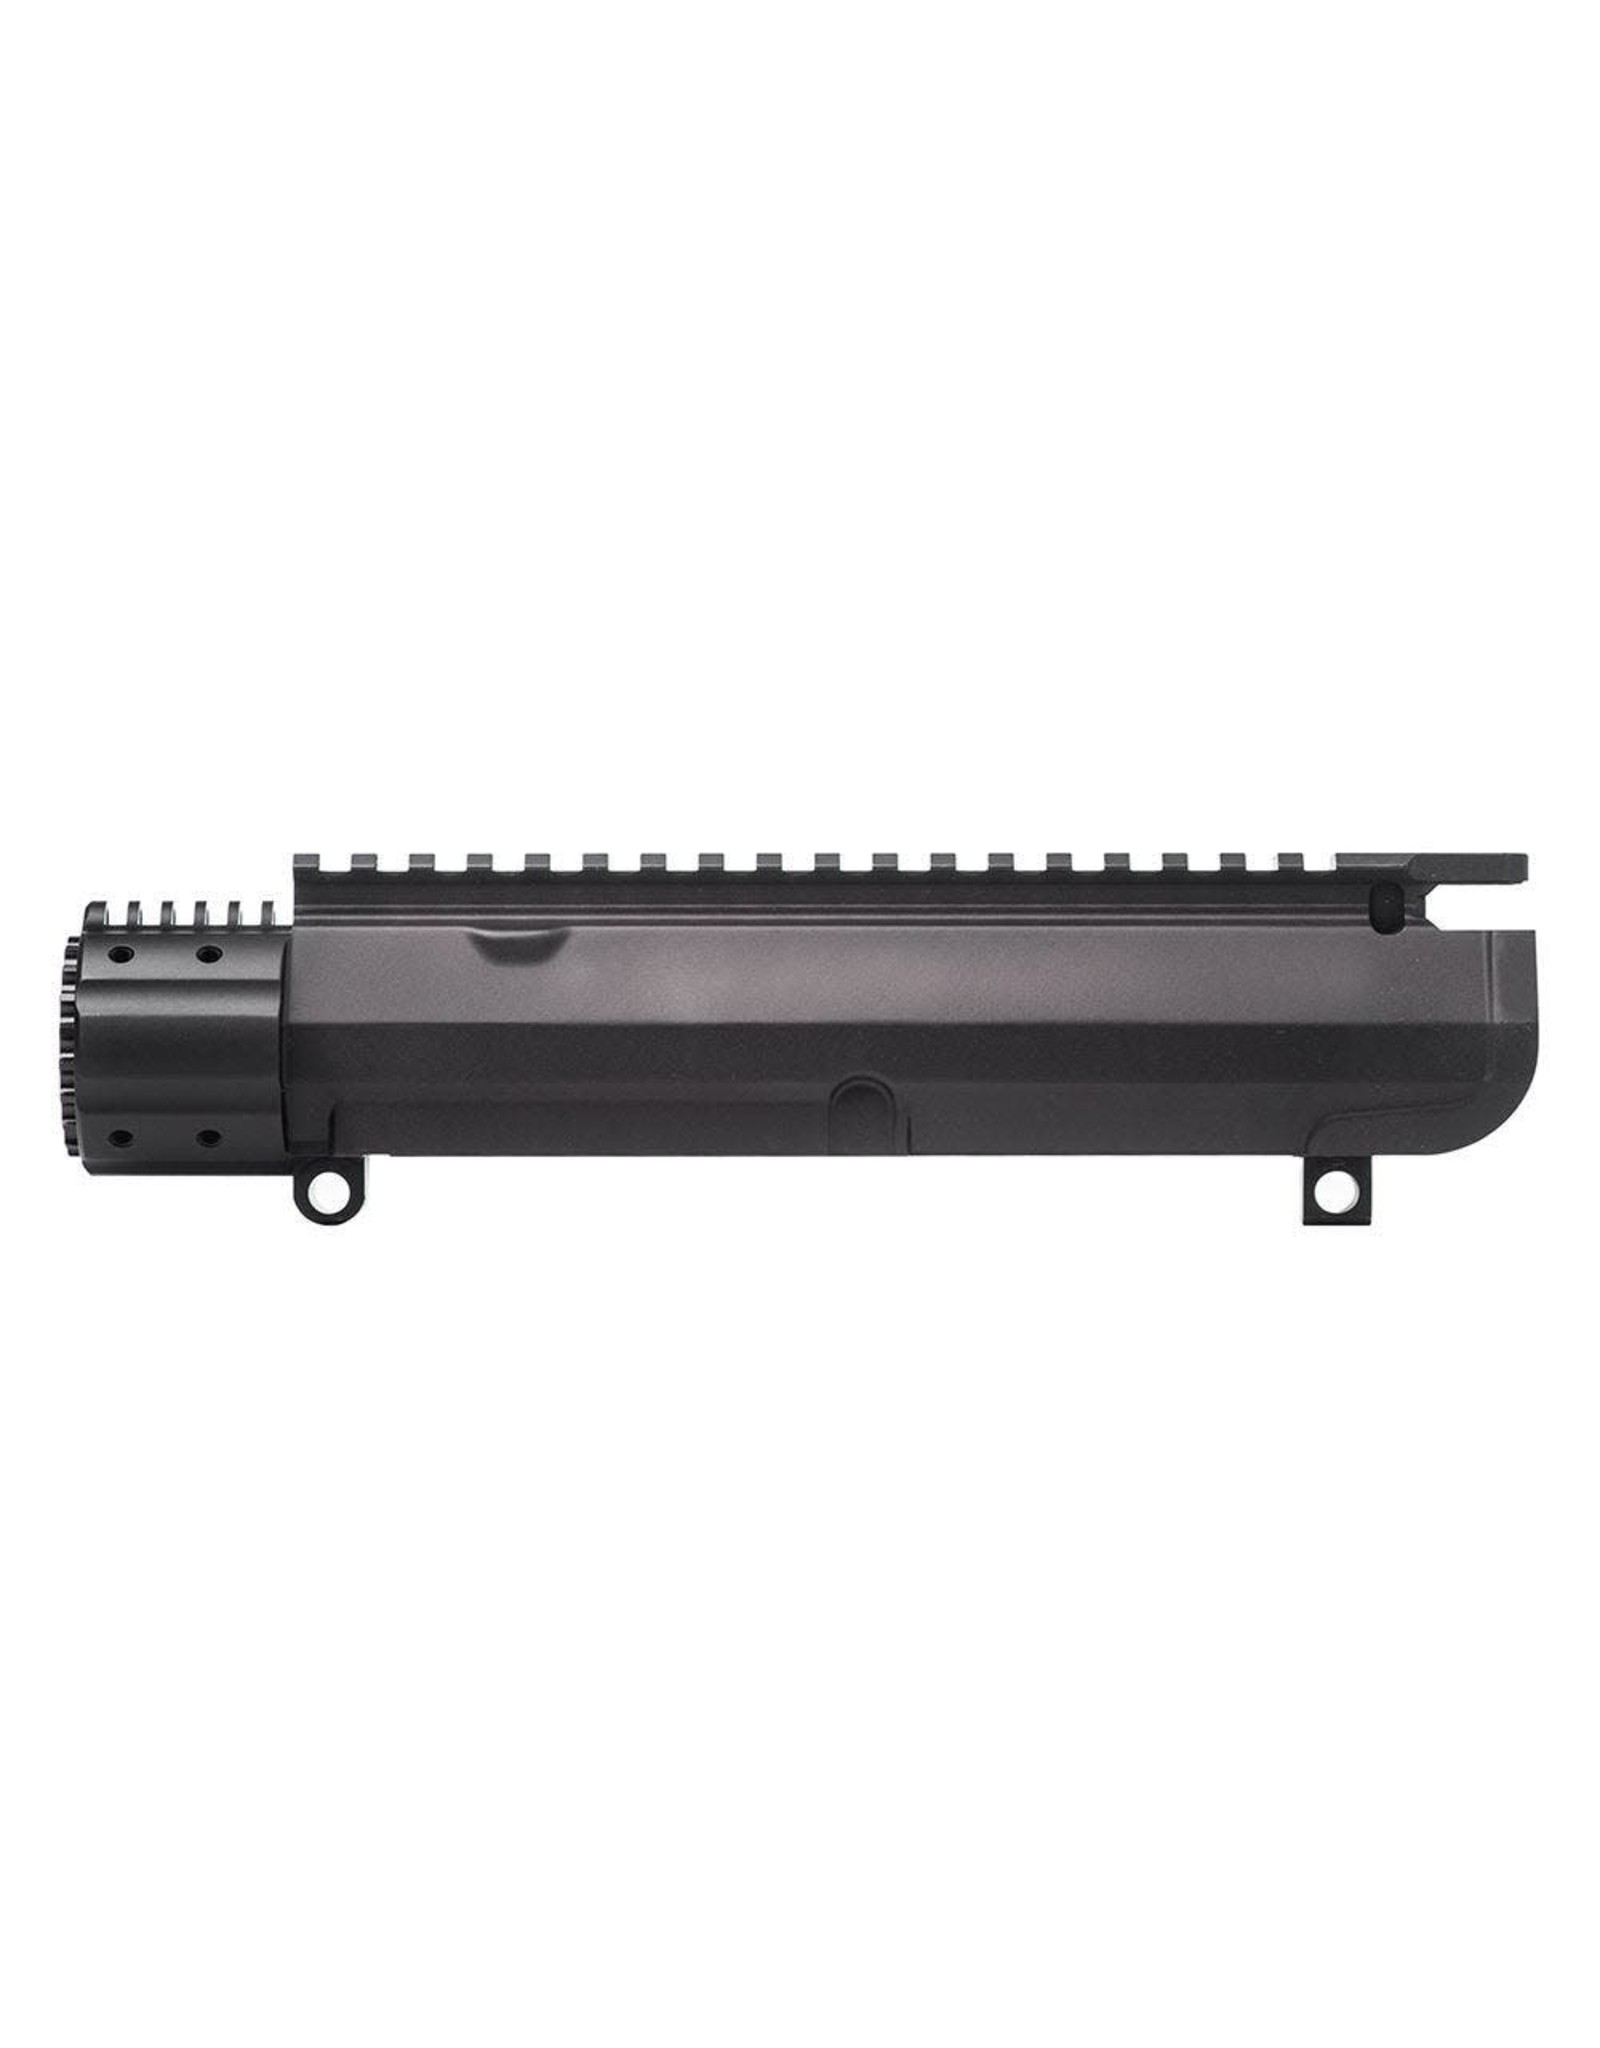 Aero Precision Aero Precision M5E1 Enhanced Upper Receiver - Anodized Black